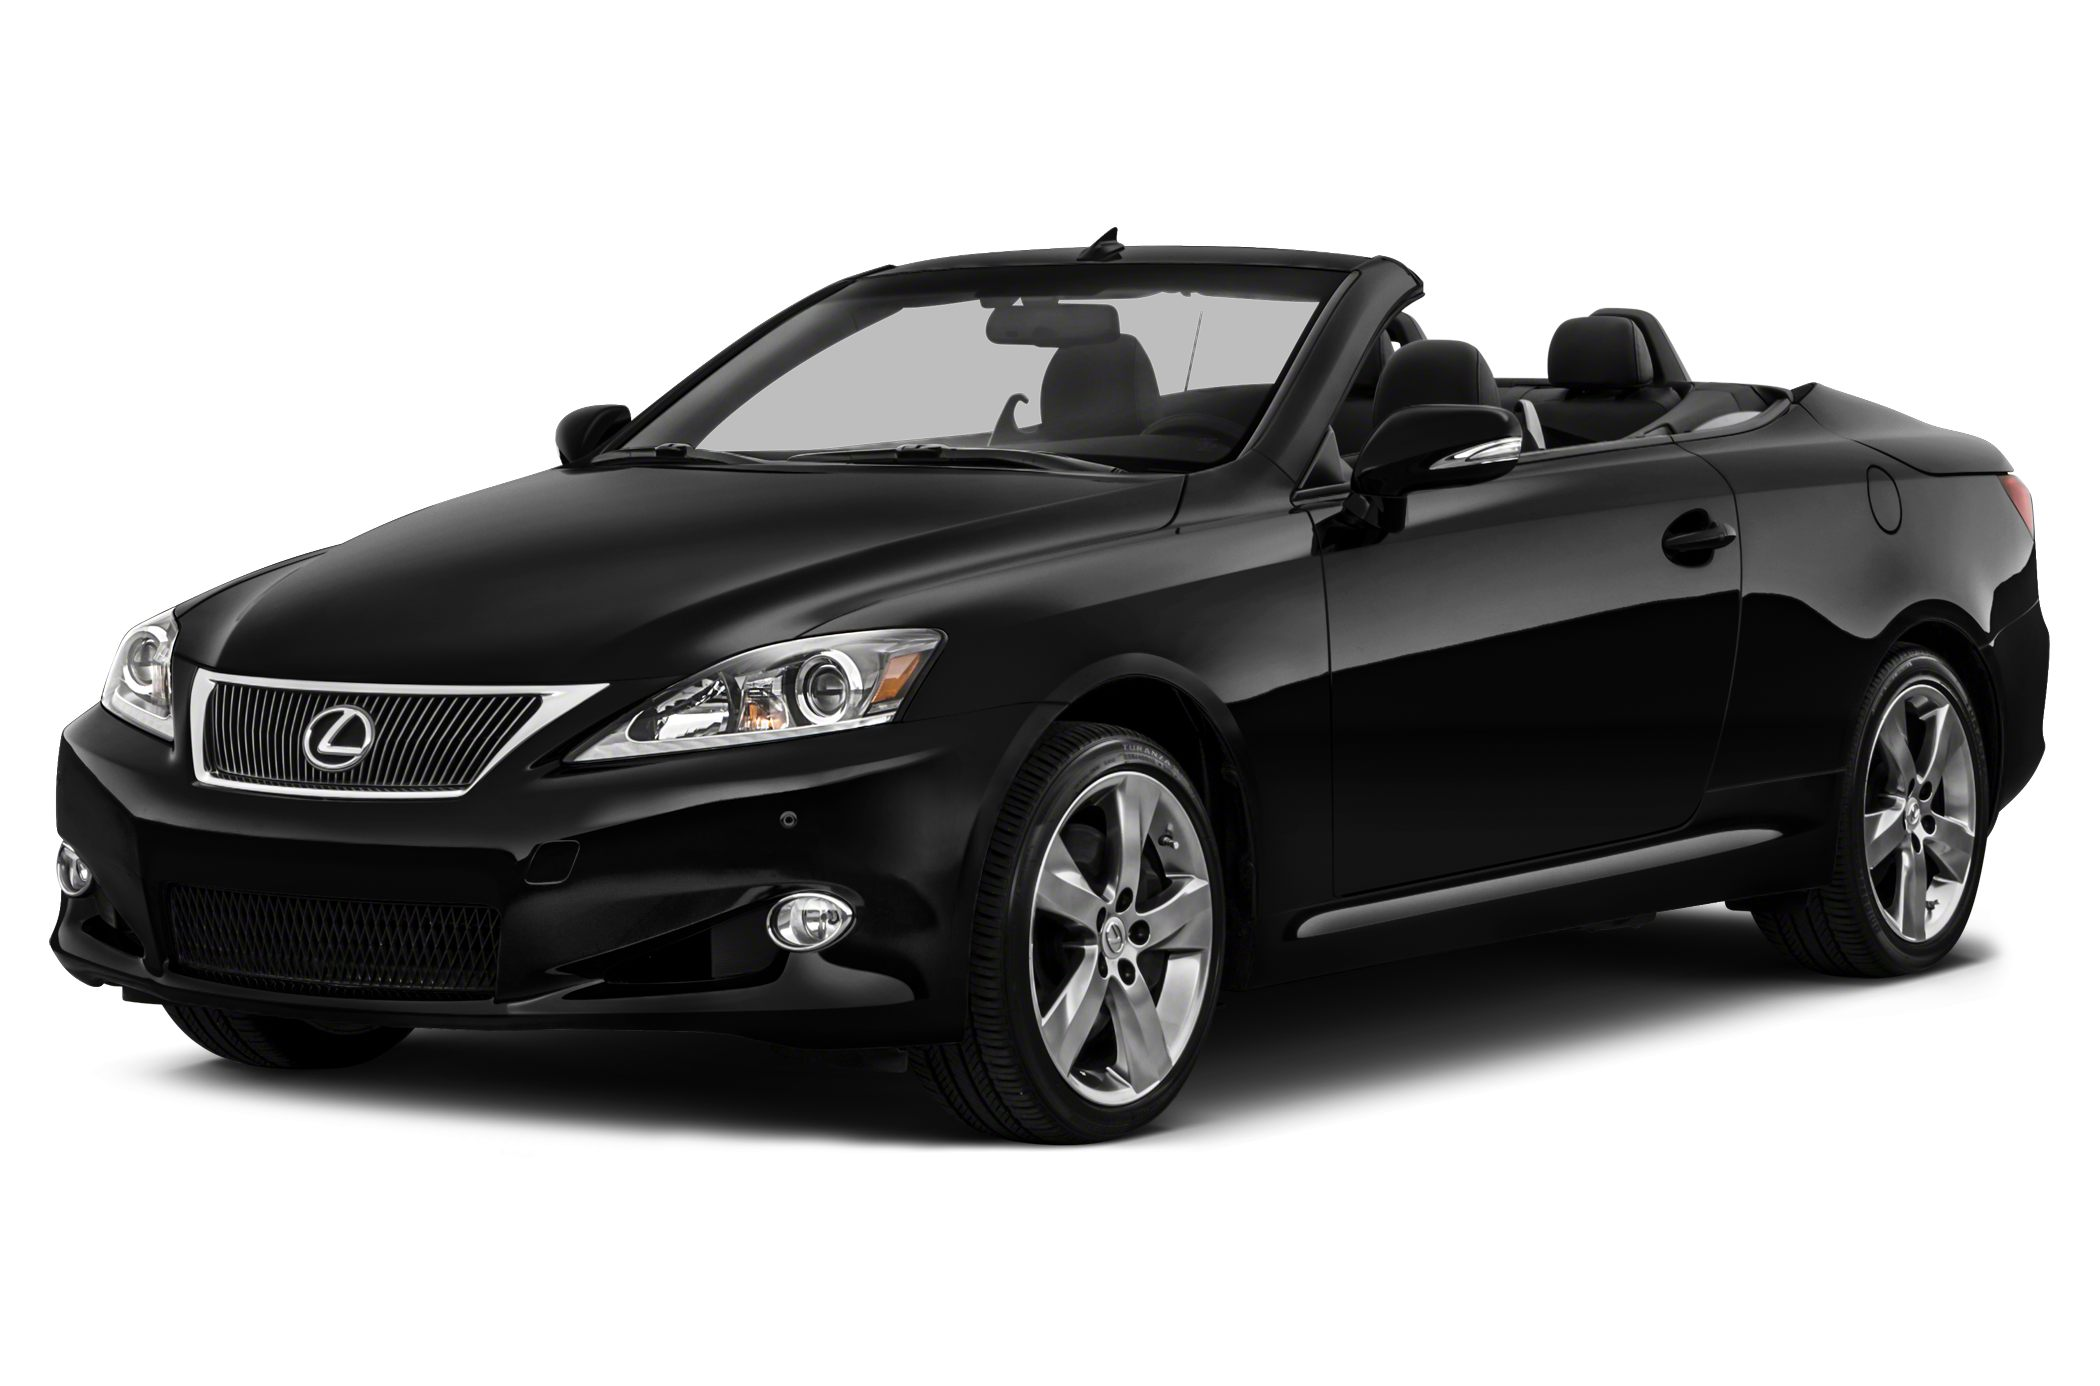 2013 Lexus IS 250C